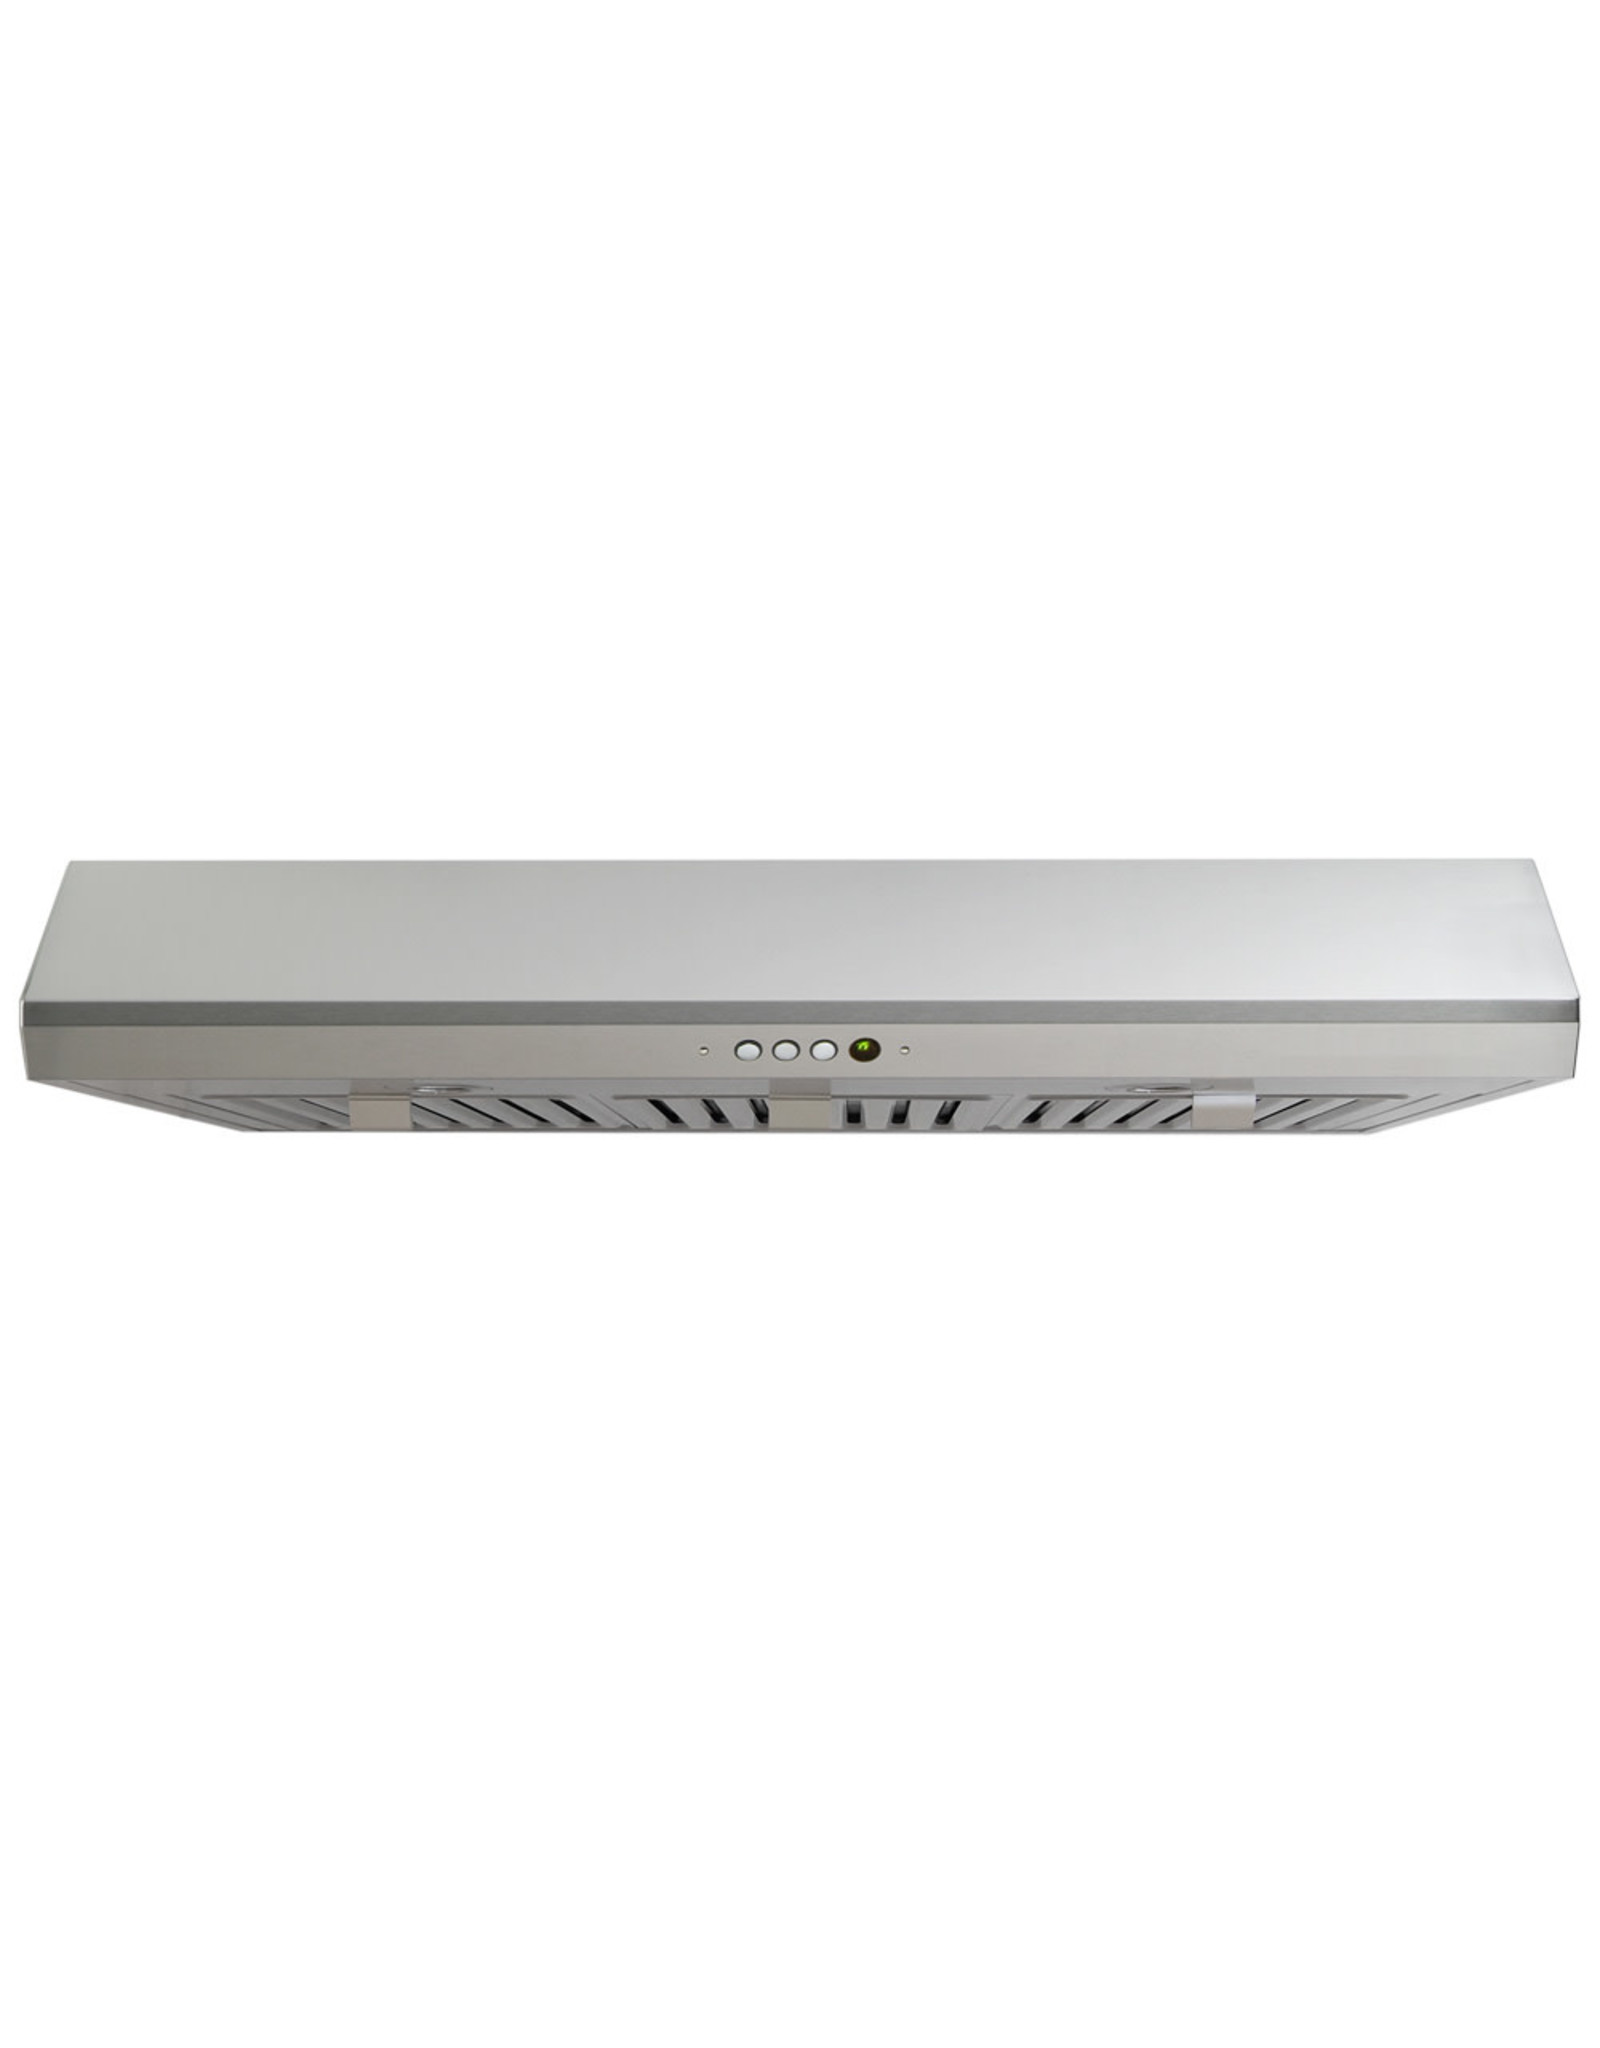 WINDSTER 3030SS RA-3030SS30″Stainless Steel5005.03LED x 26″ / 7″vertical2 / 21No